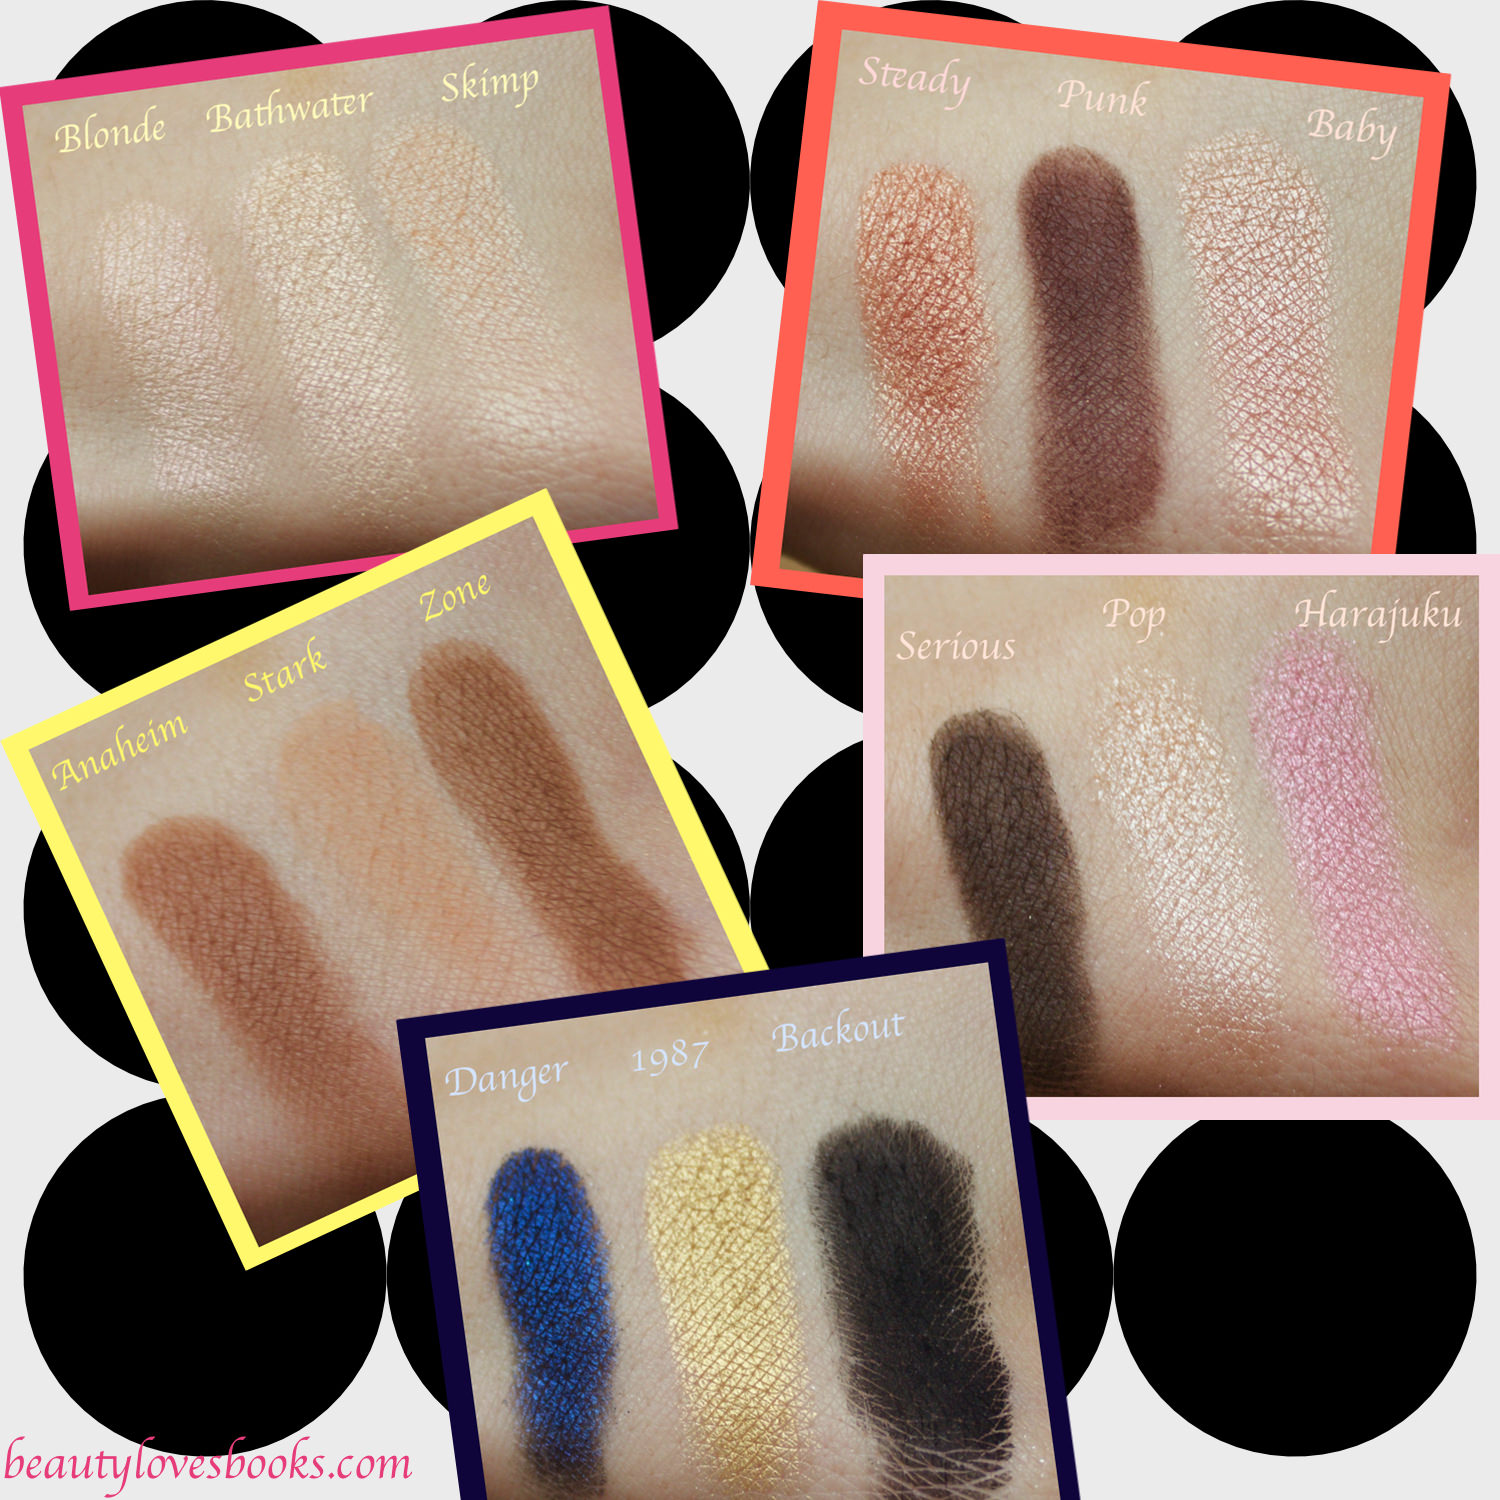 Urban Decay X Gwen Stefani swatches